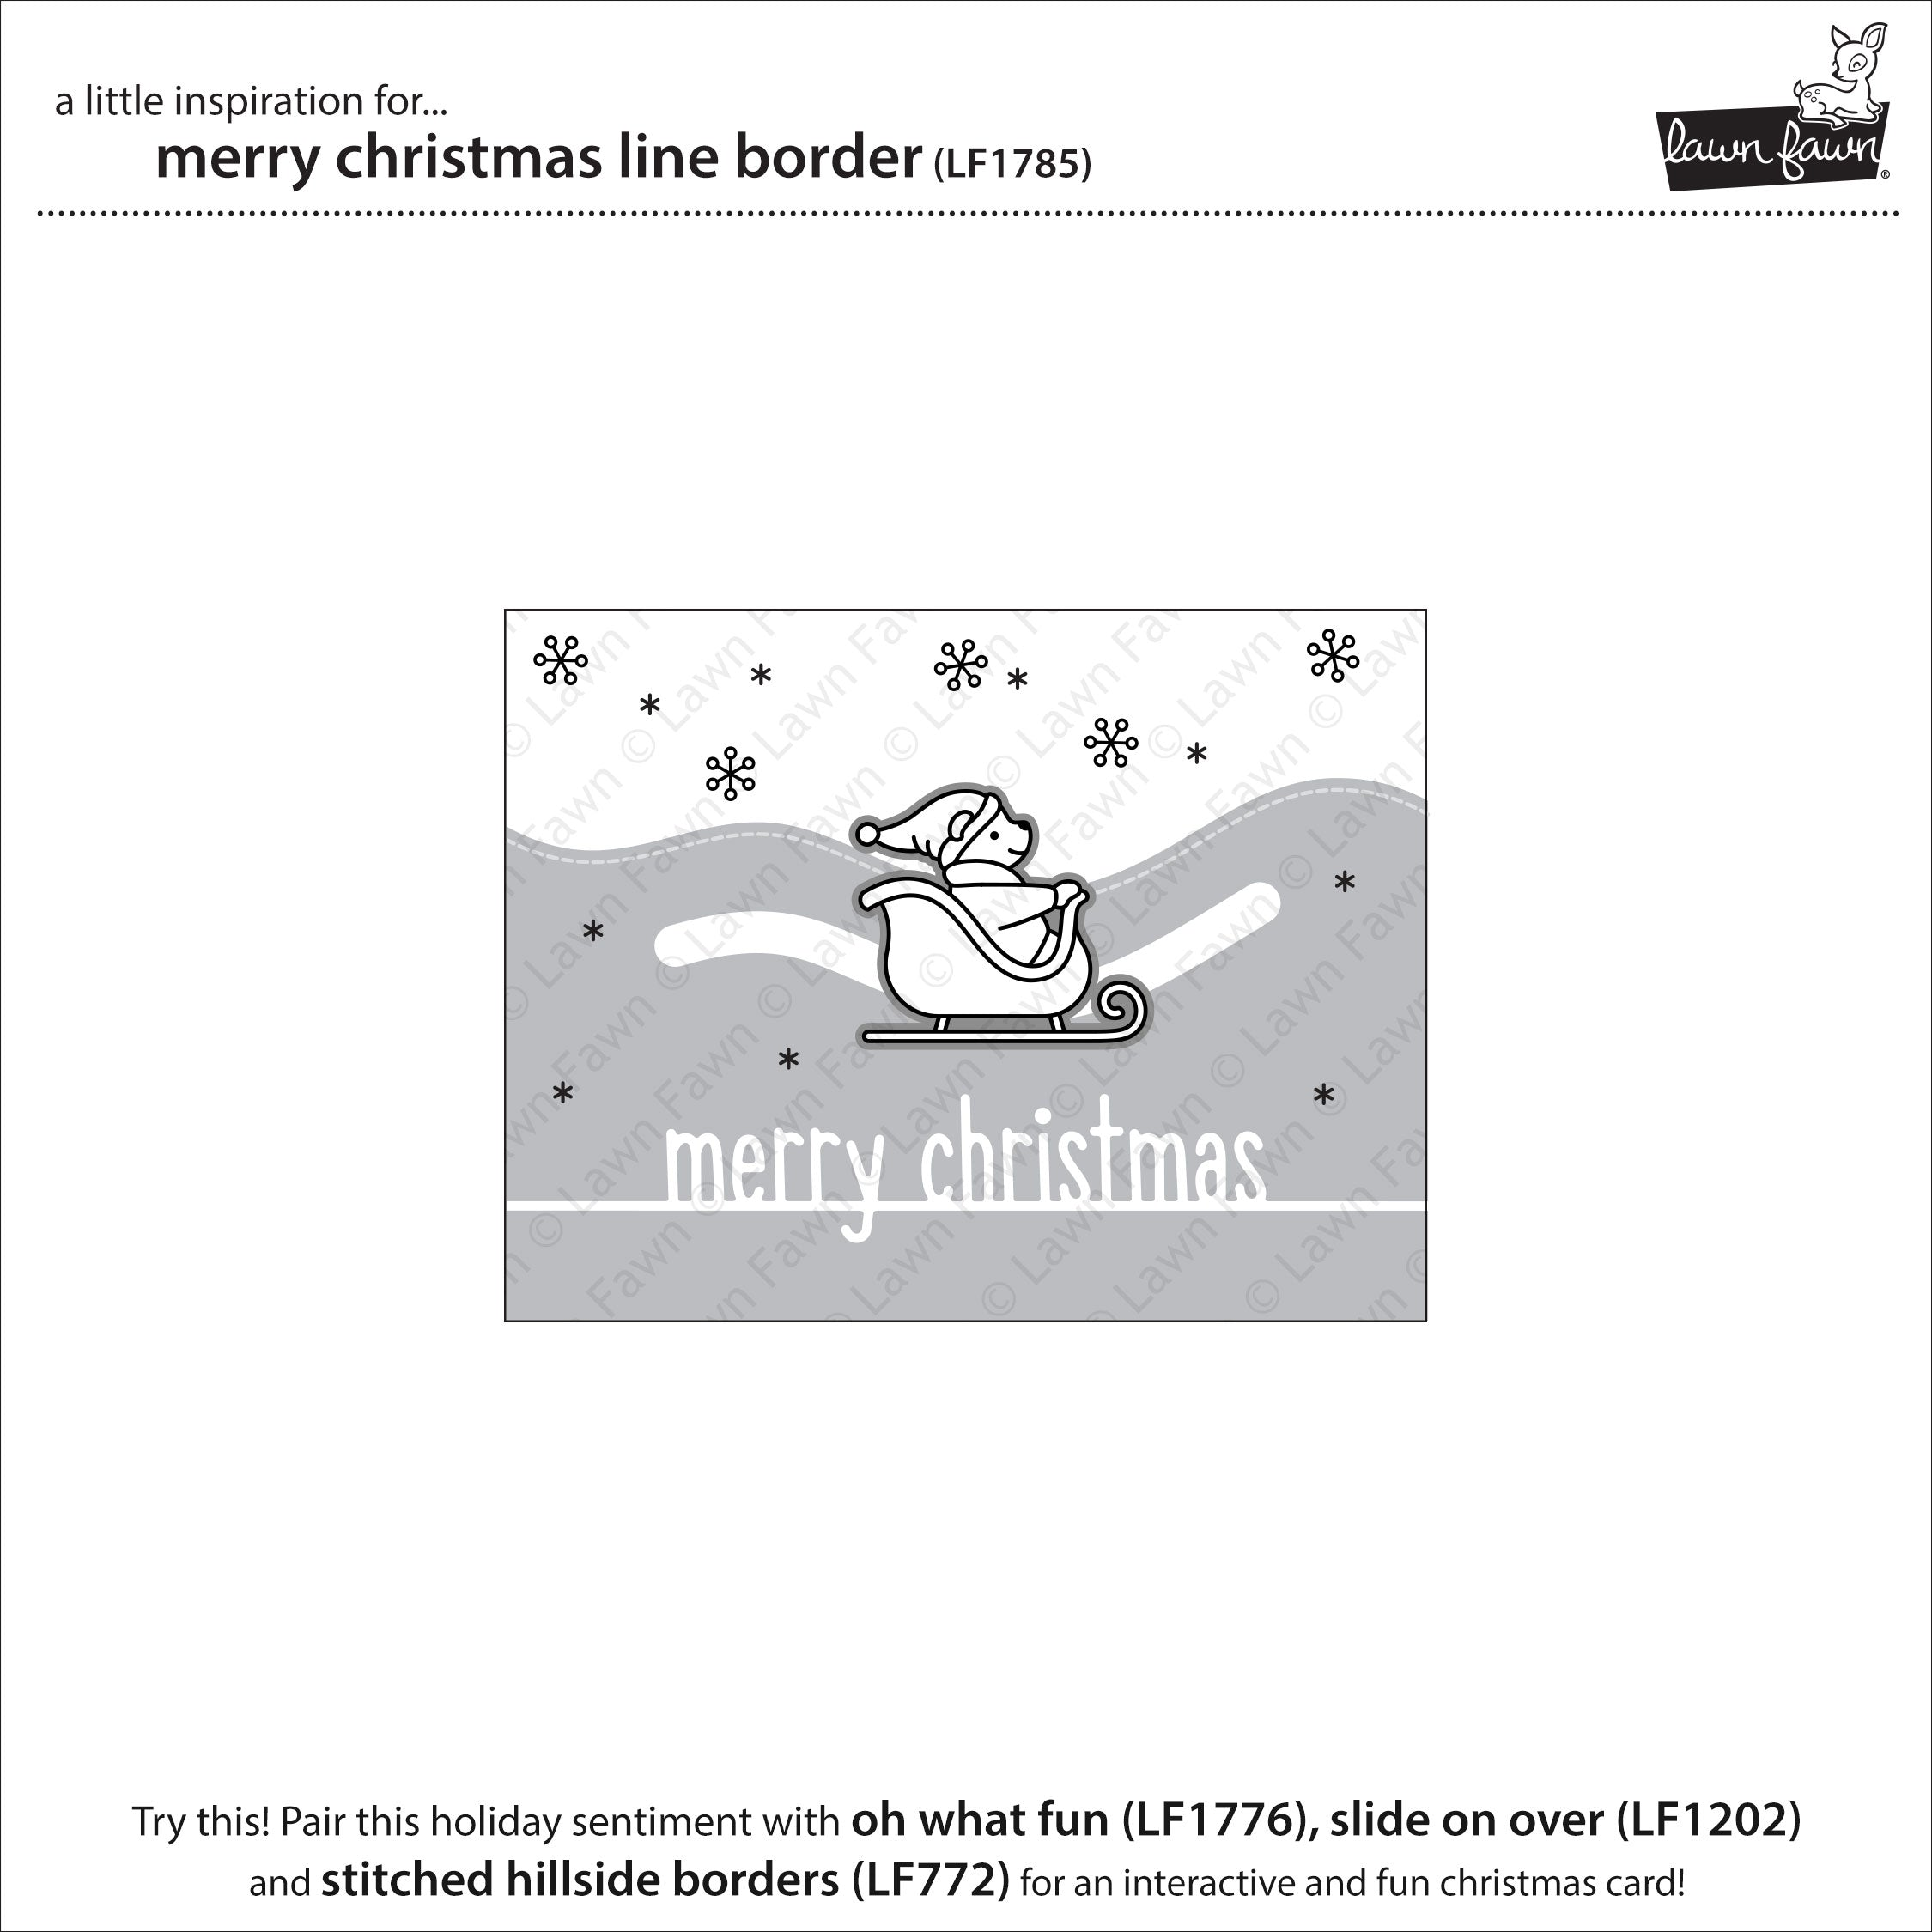 merry christmas line border